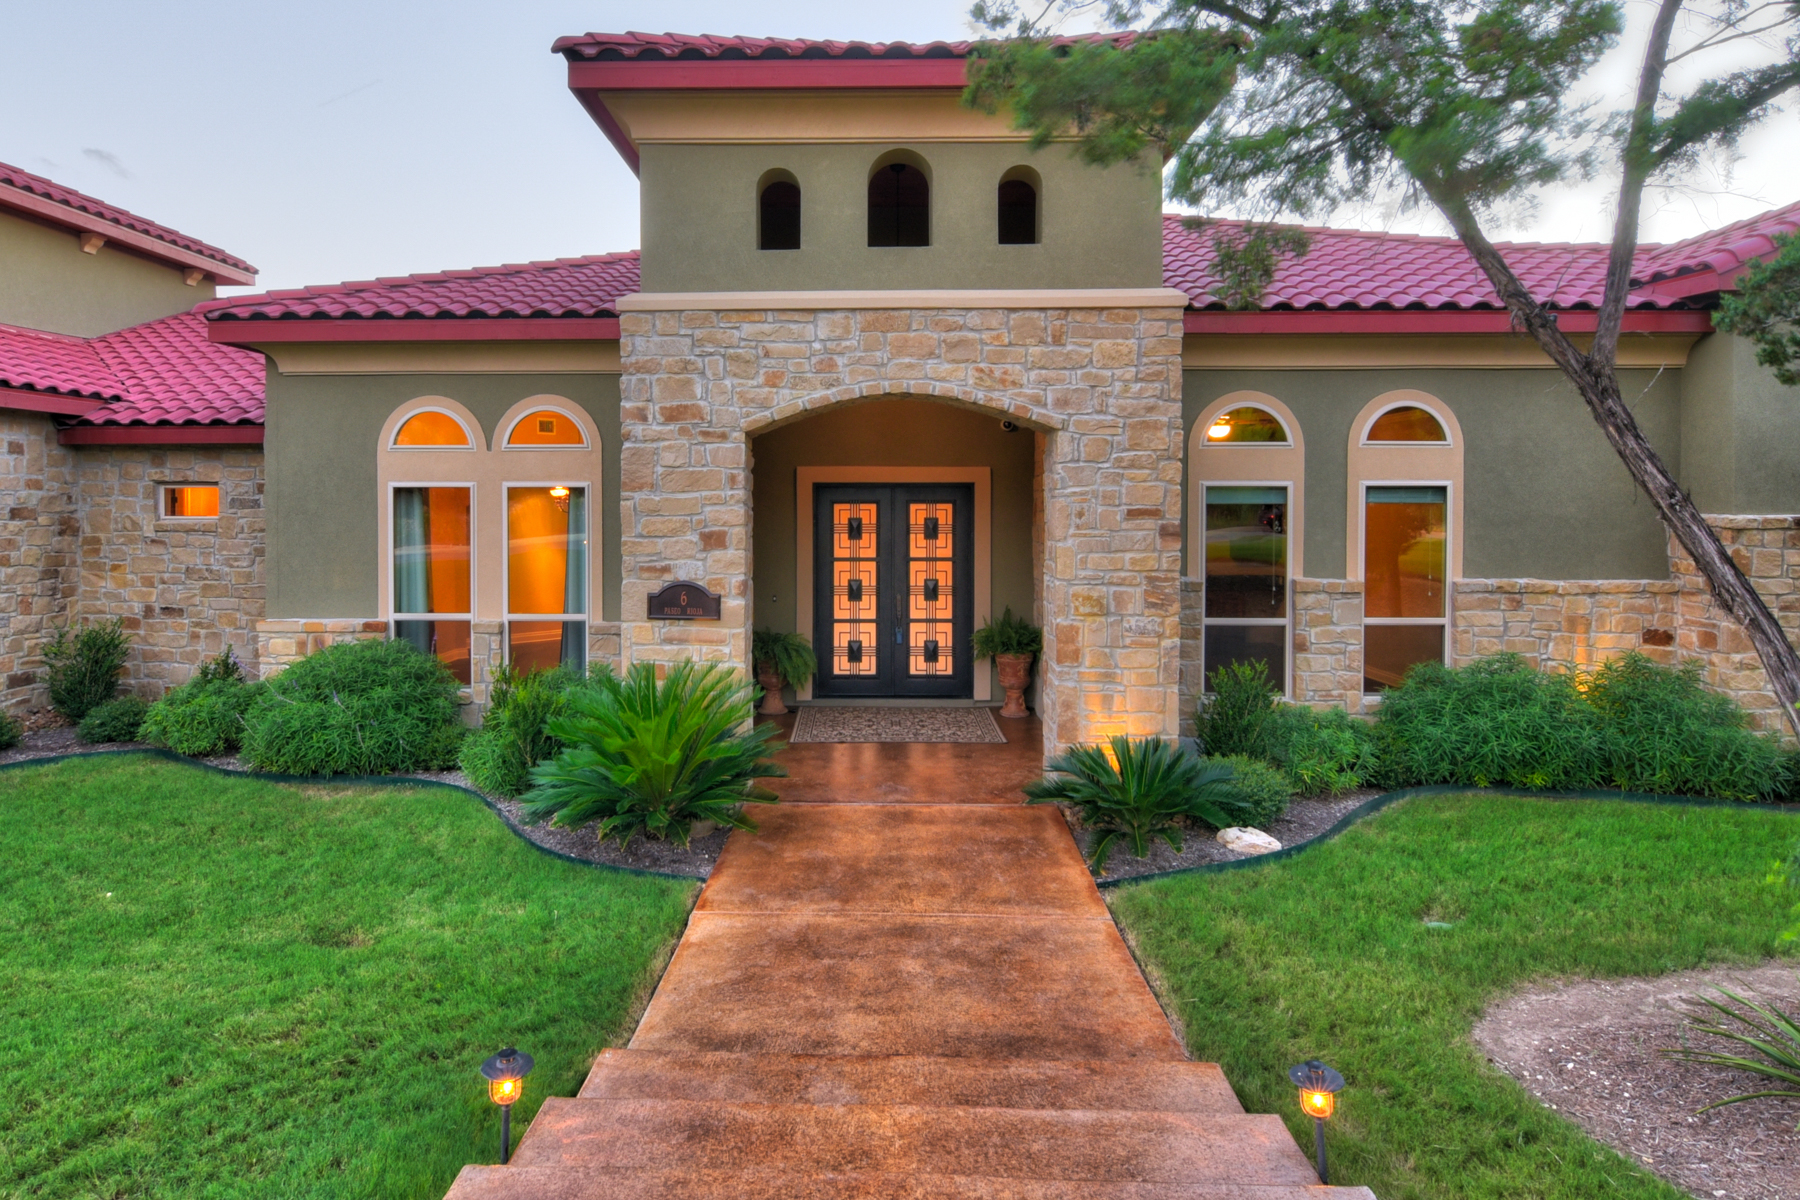 Additional photo for property listing at Gorgeous Estate in The Dominion 6 Paseo Rioja San Antonio, Texas 78257 Estados Unidos